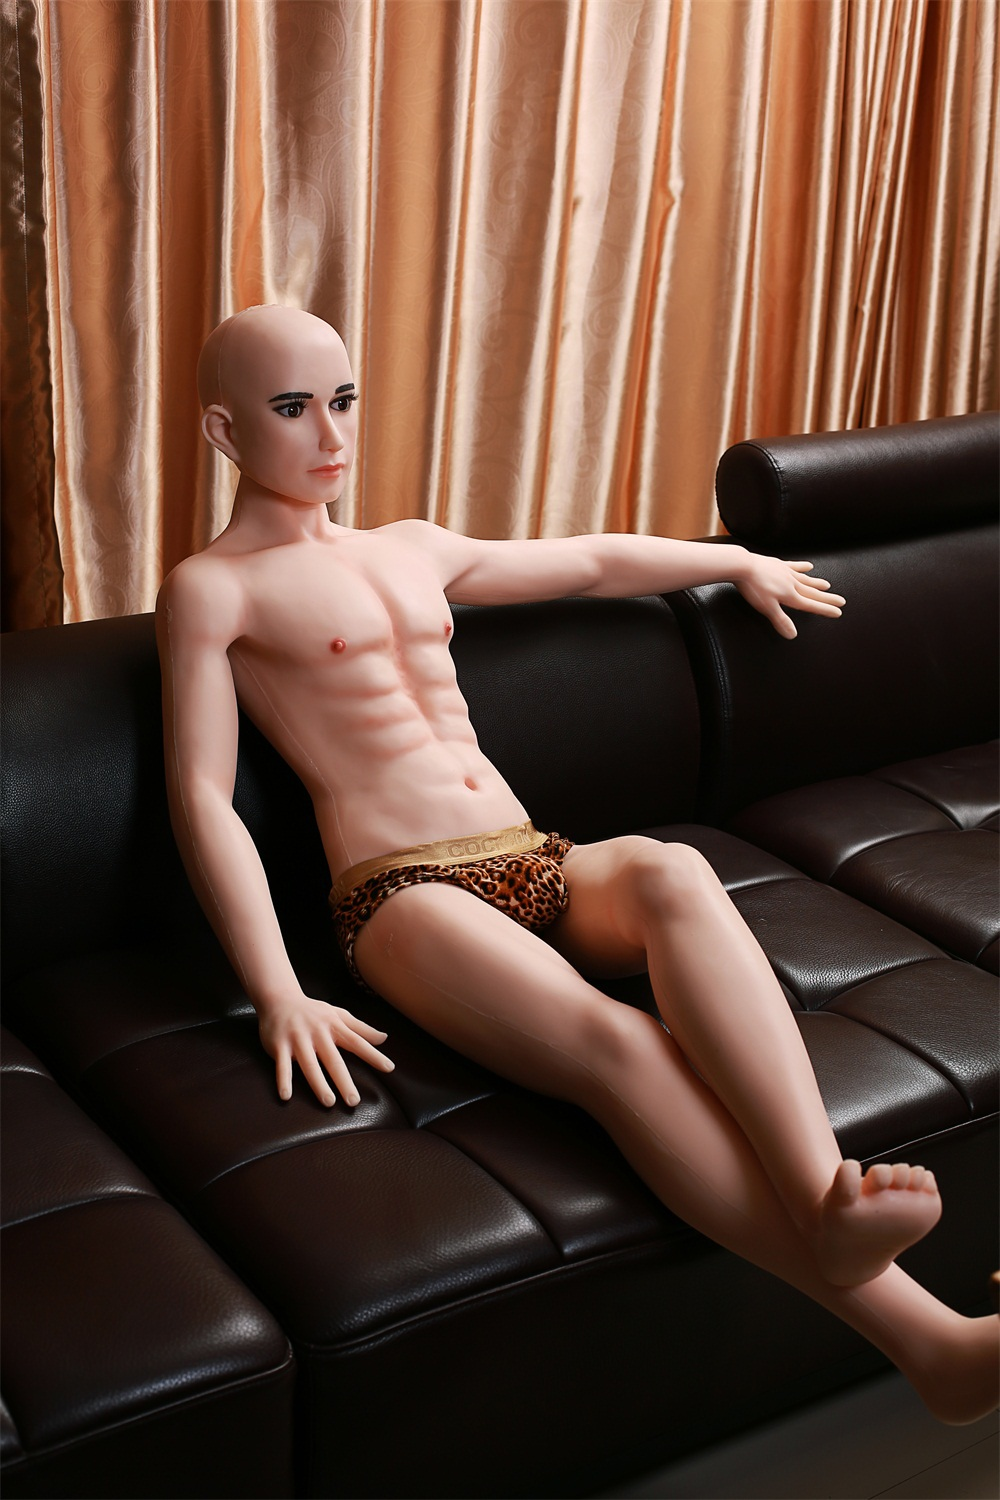 Women Fucking Male Silicone Doll 96